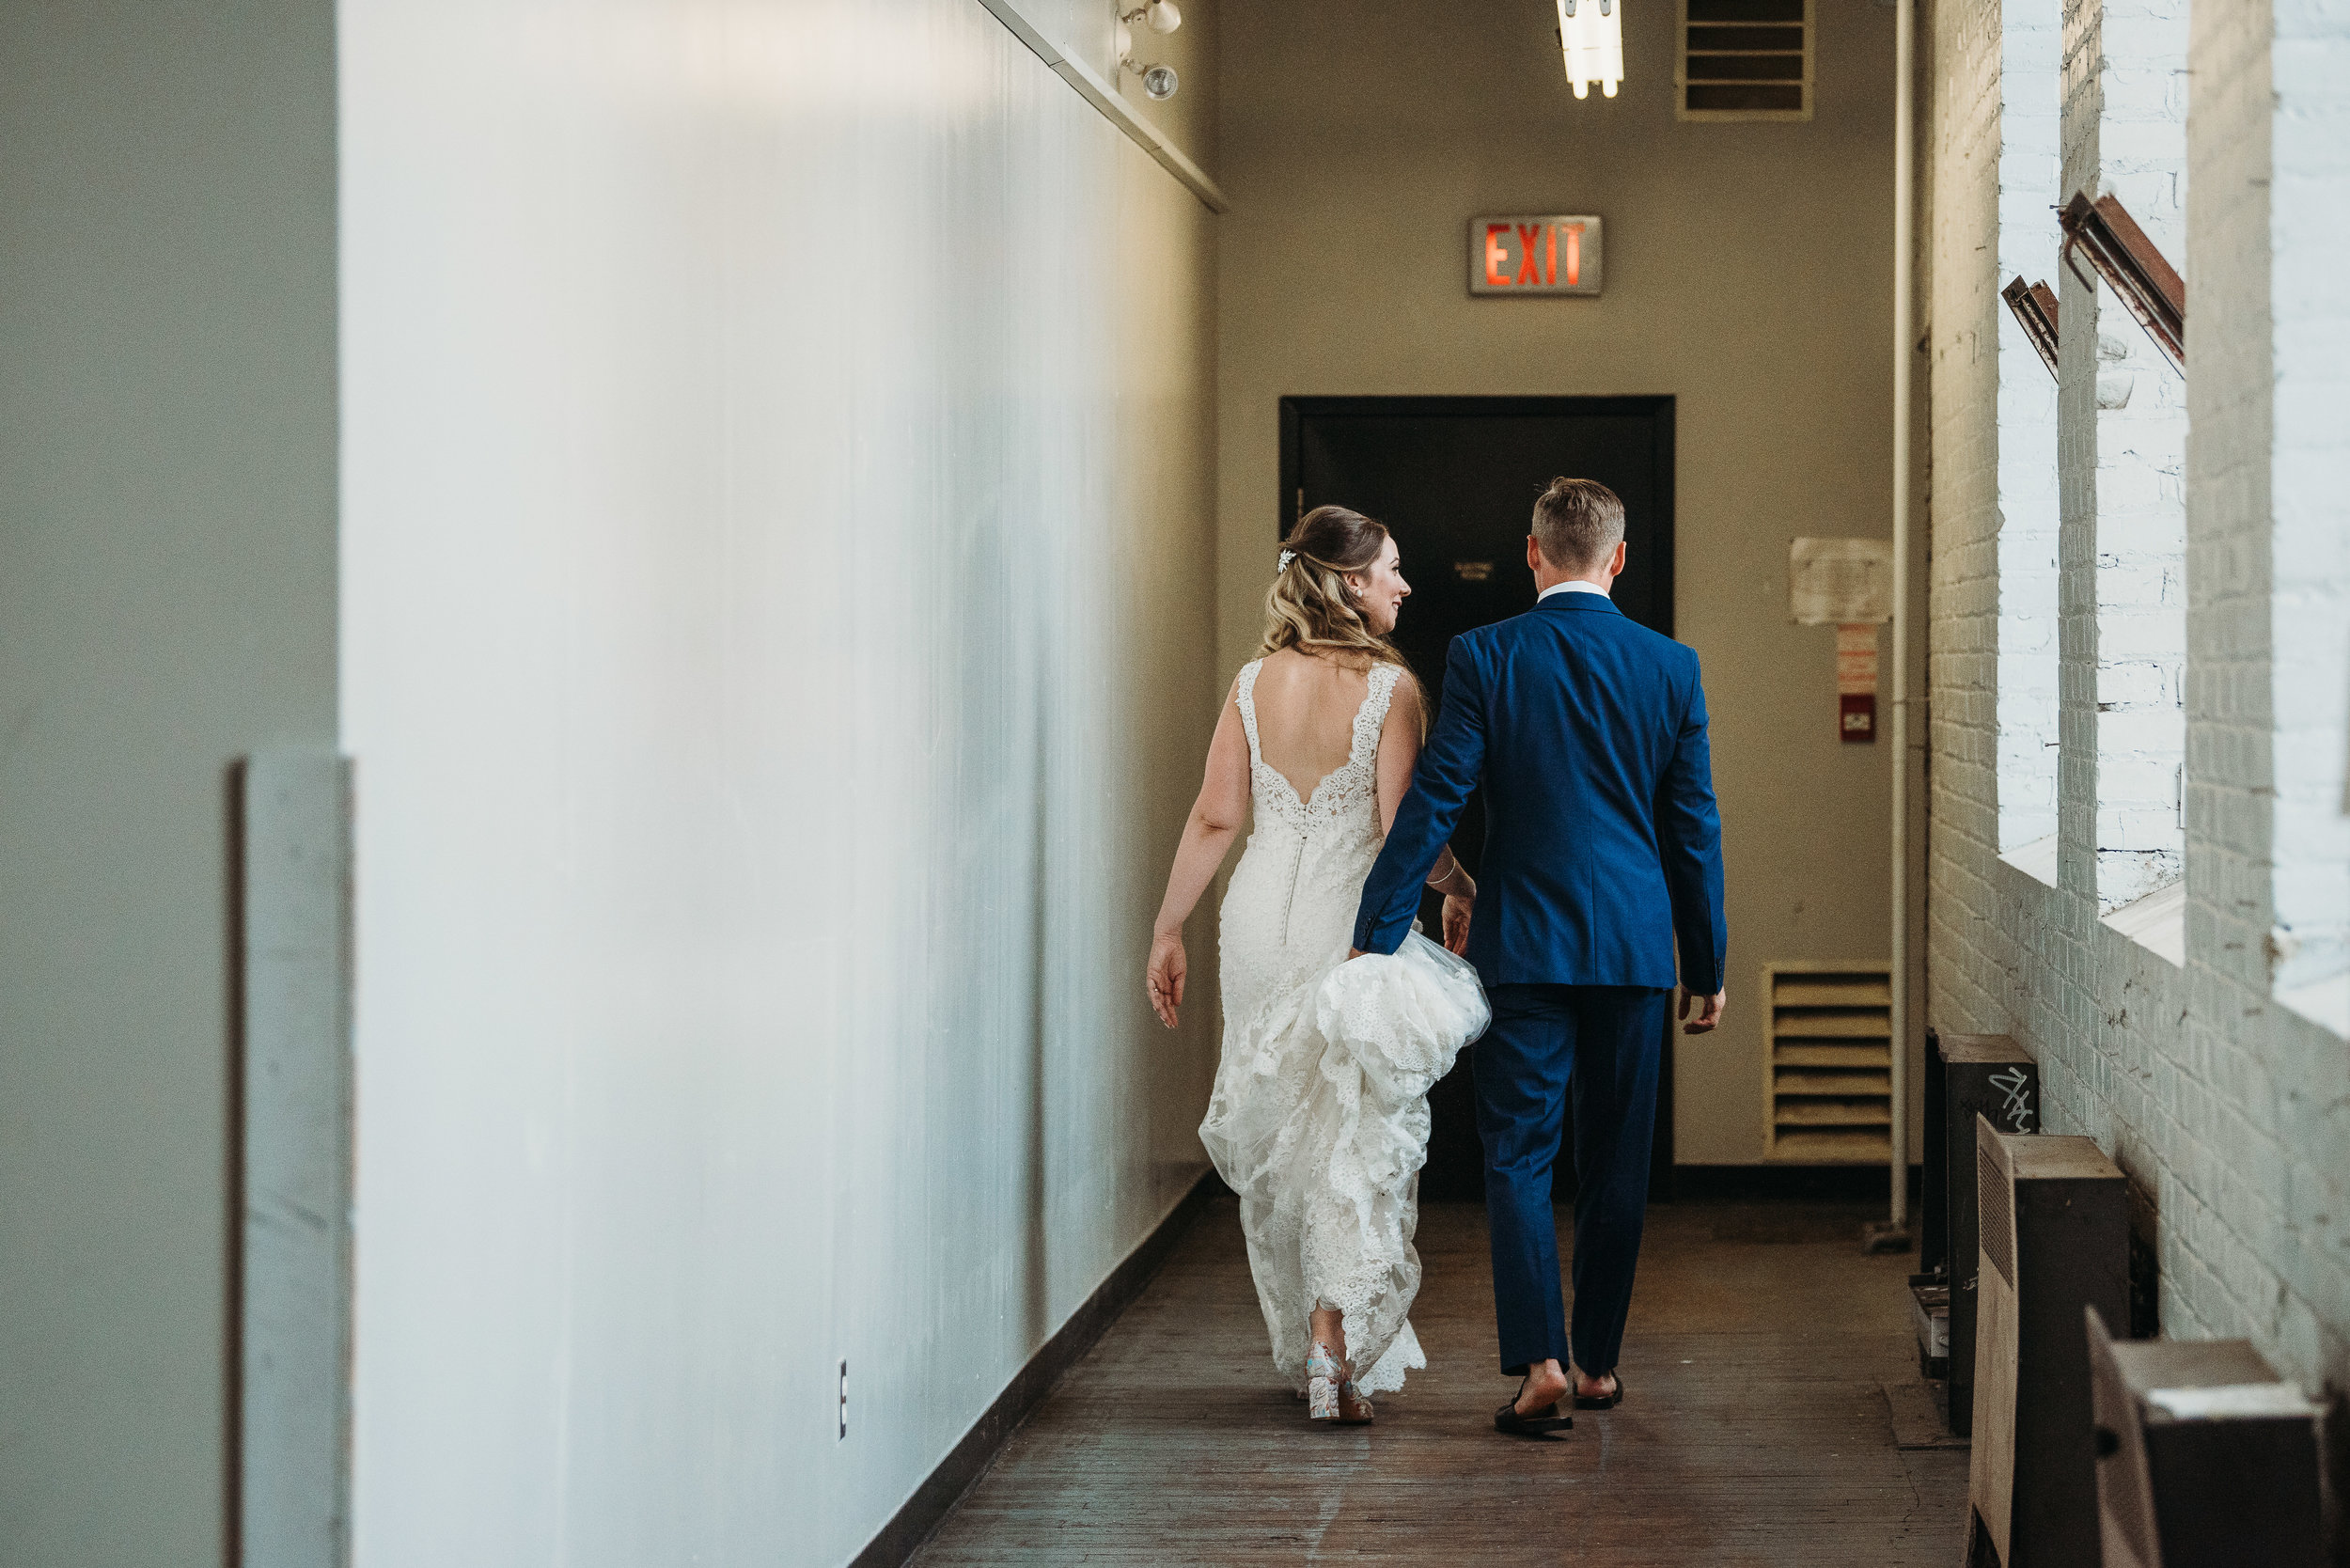 bride-groom-walking-toronto-rustic-boho-airship37-wedding-by-willow-birch-photo-toronto-documentary-wedding-photographers.jpg